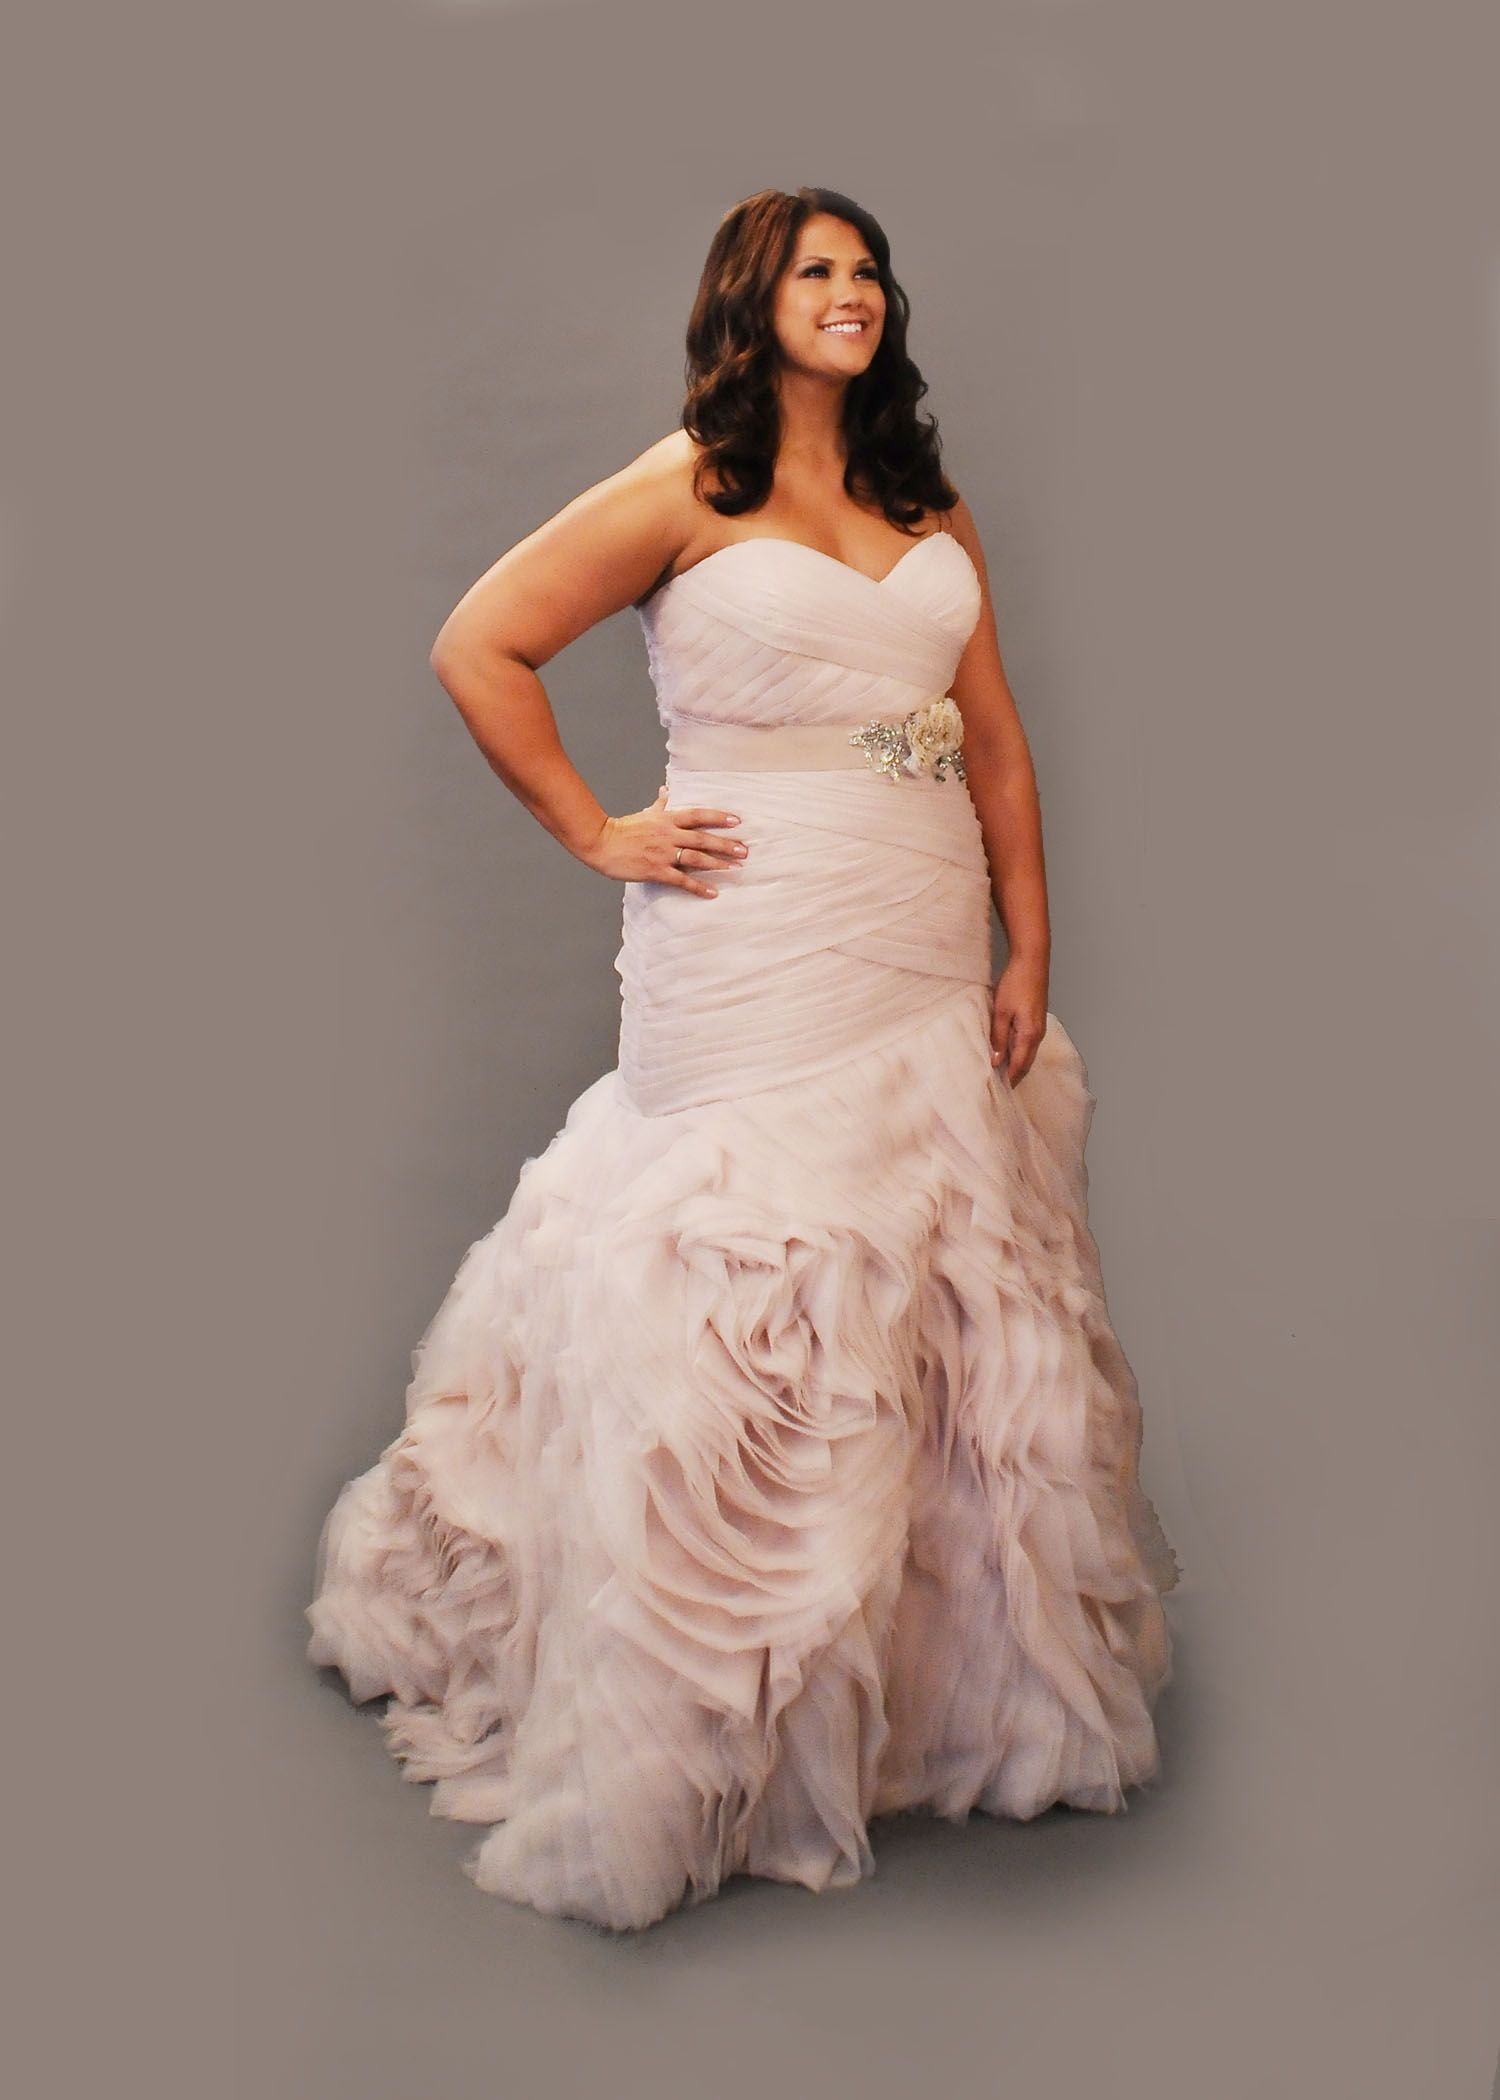 Pink Plus Size Wedding Dresses | Curvy Bride Plus Size Wedding Dress Plus Size Fashion Curvy